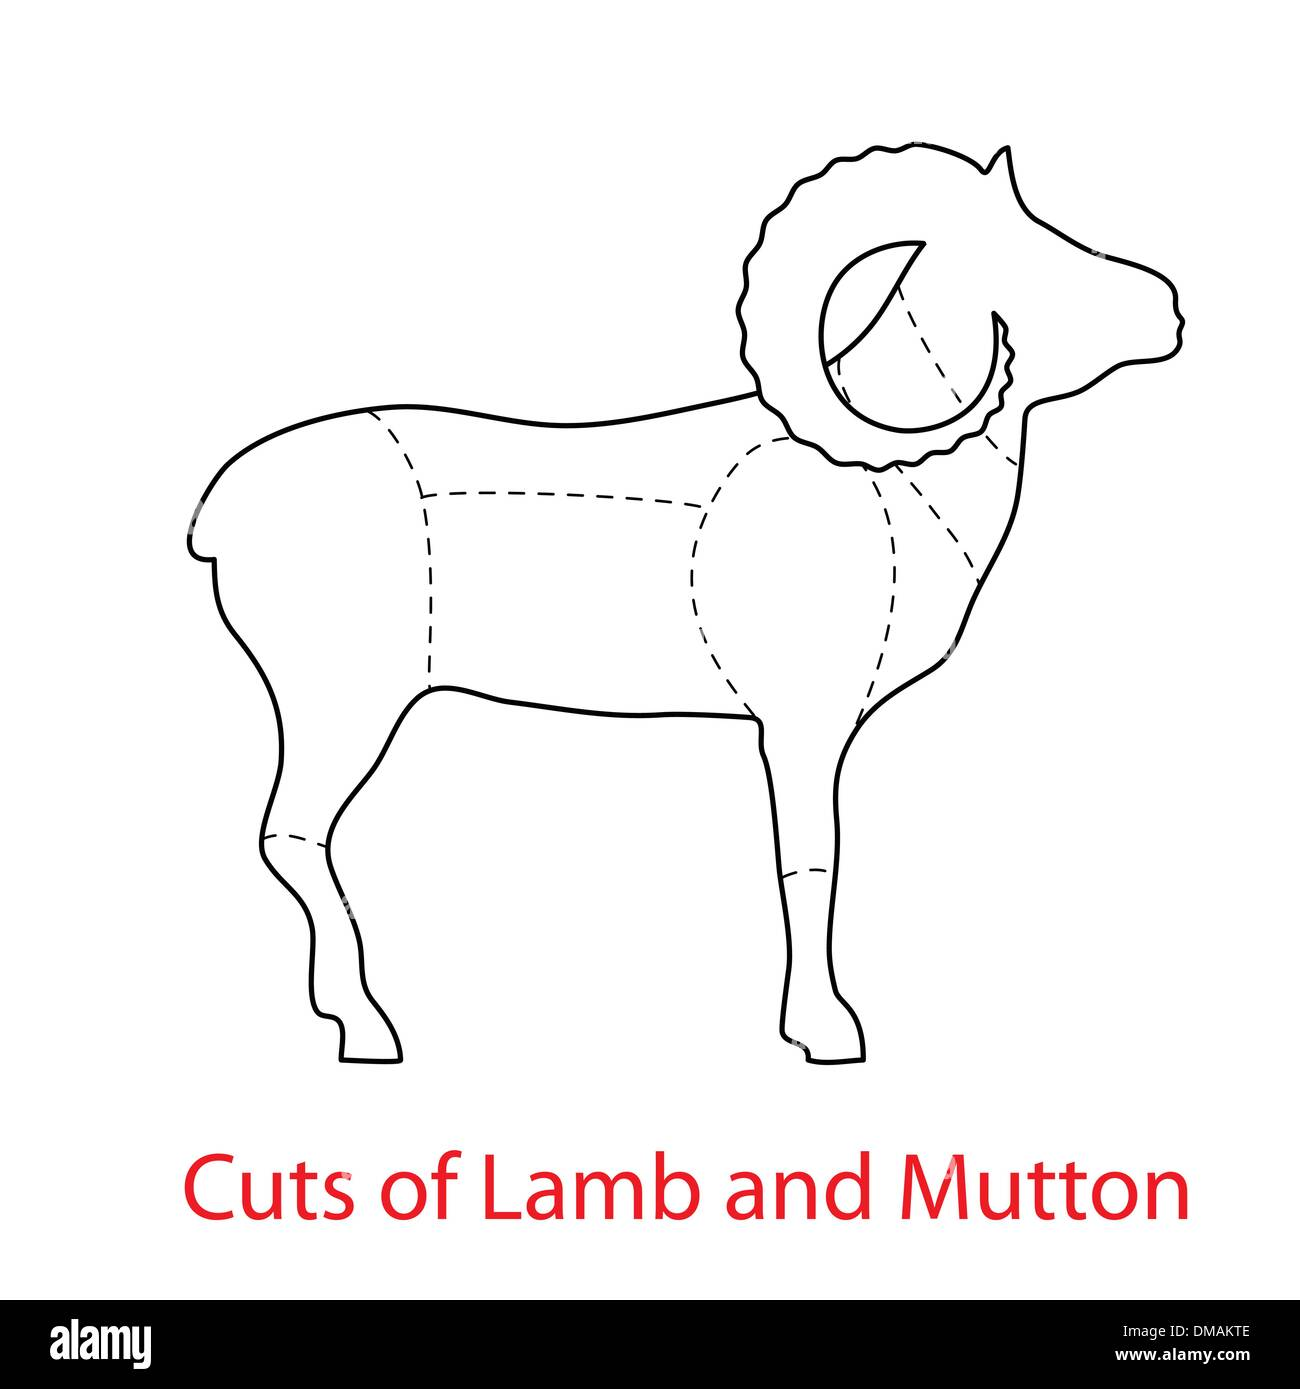 Cuts-of-Lamb-and-Mutton - Stock Image